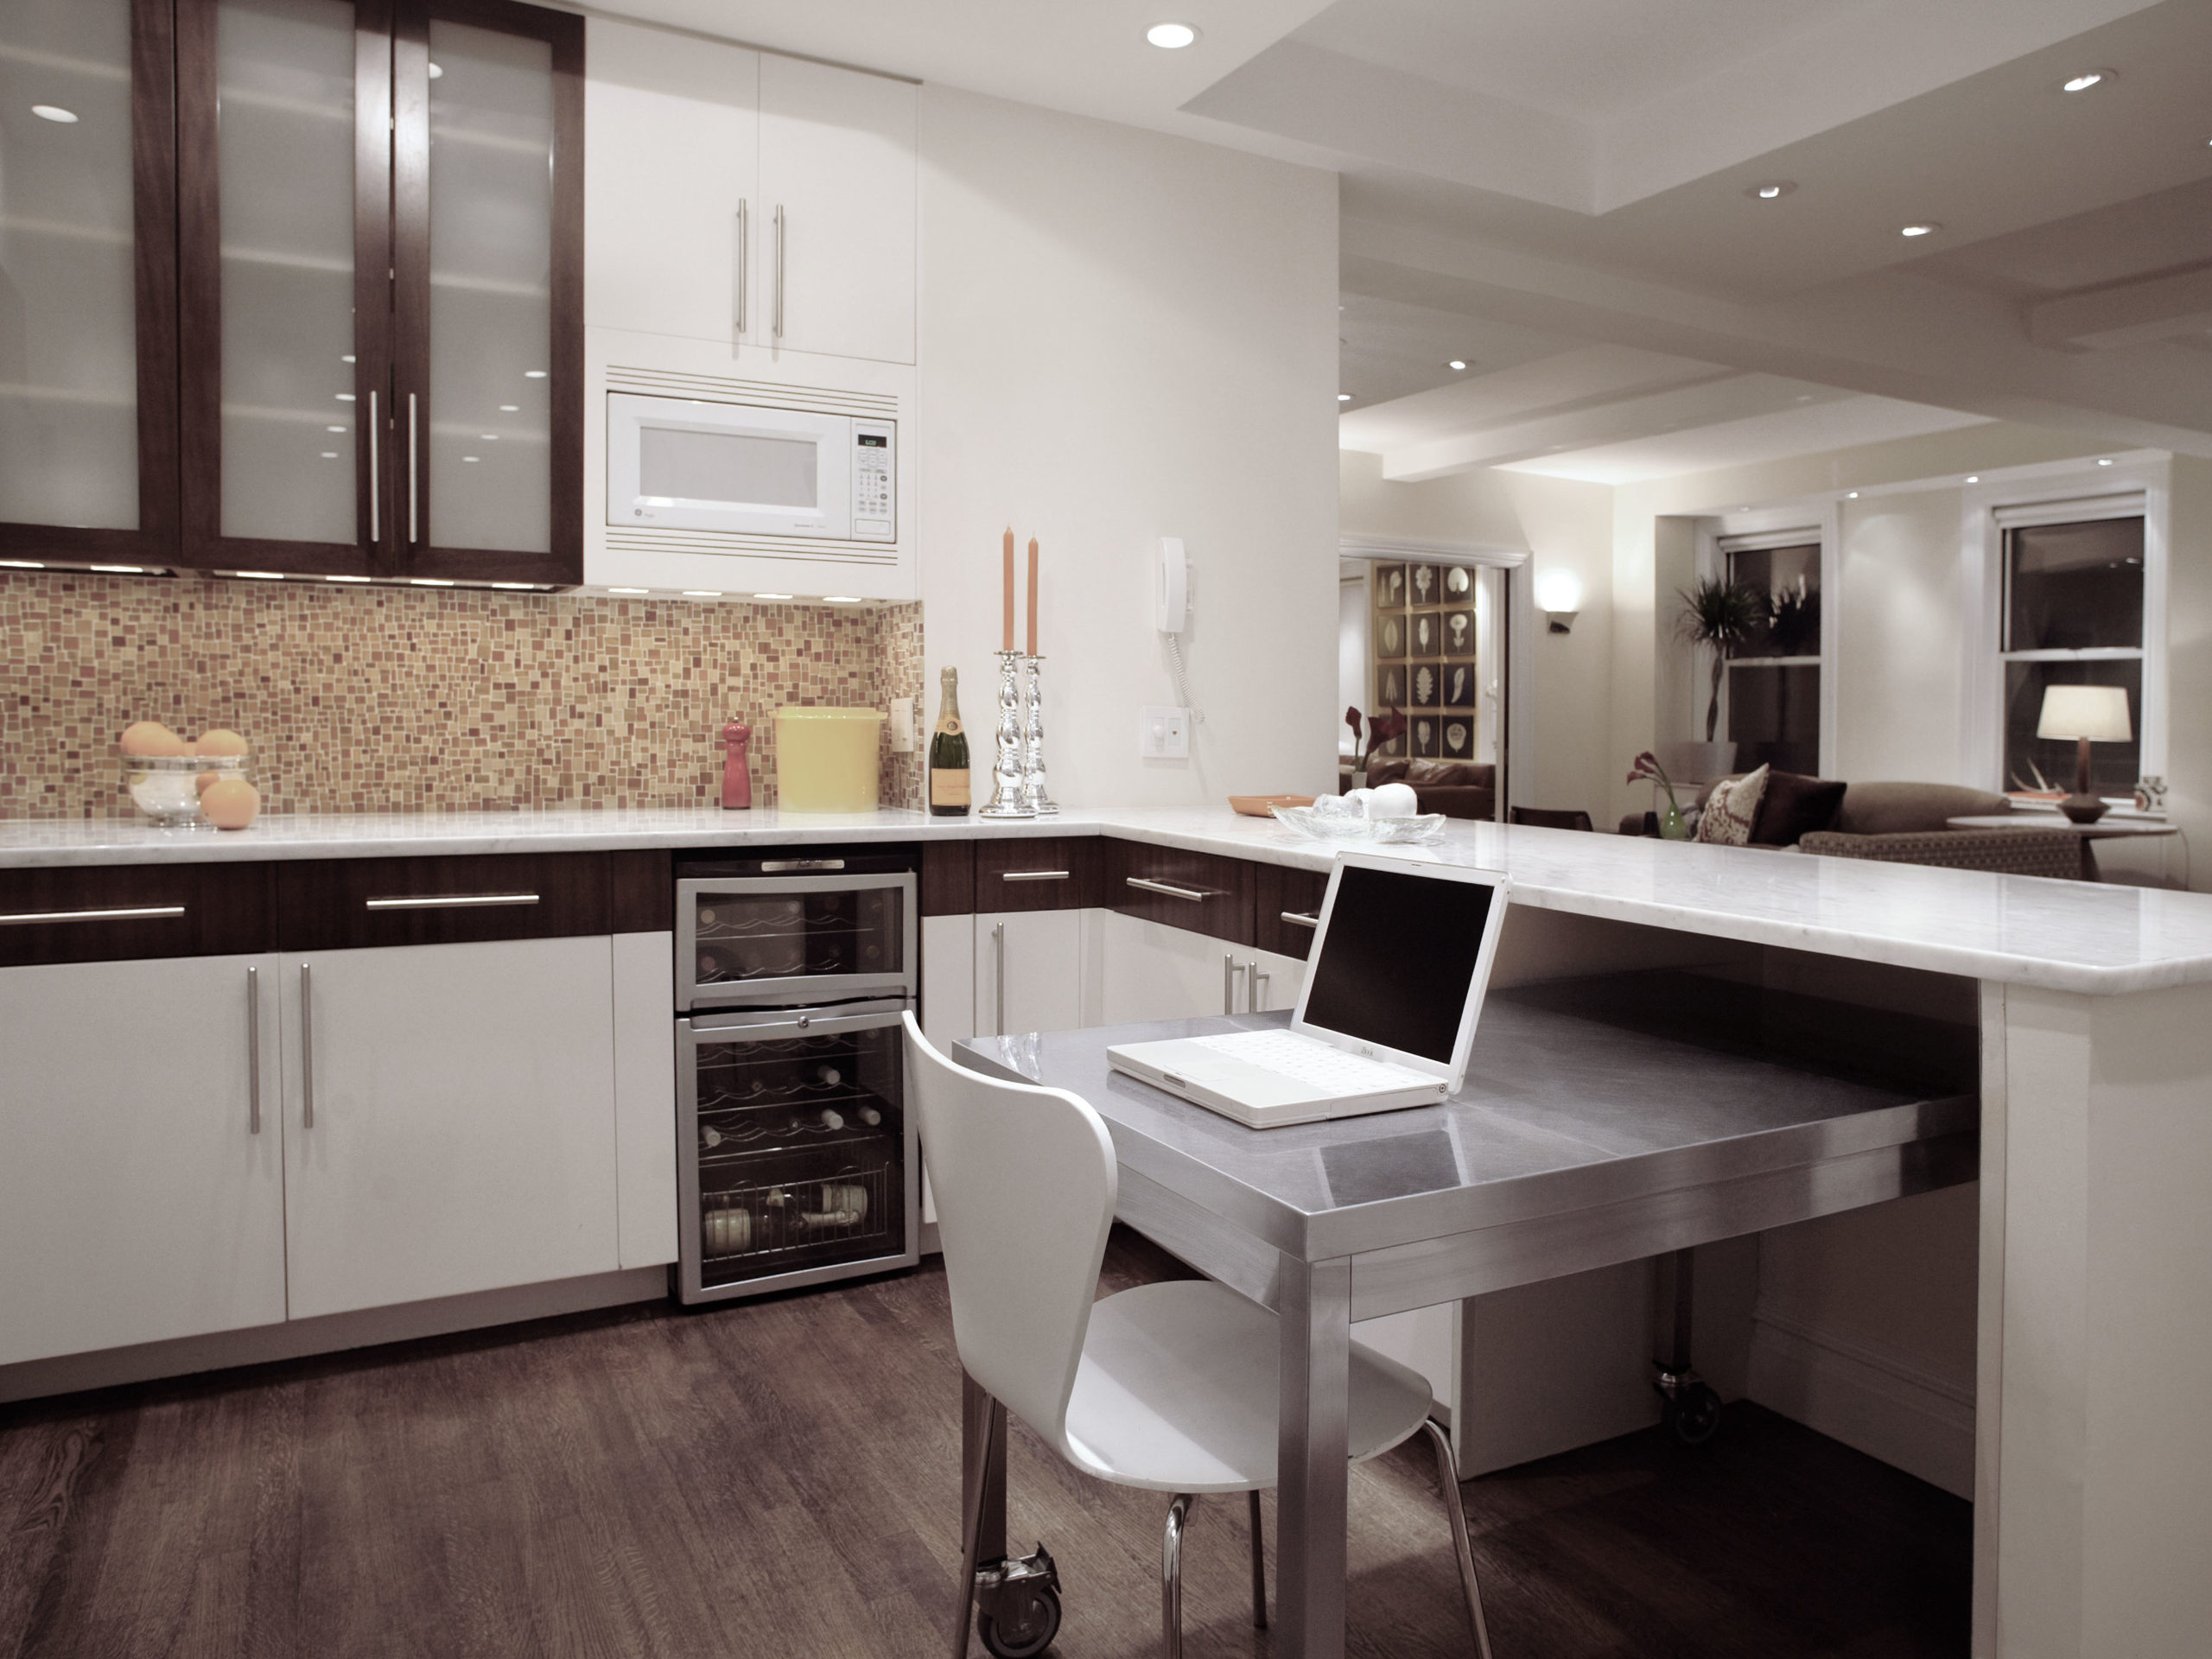 Kitchen design after apartment combination by EXD Architecture